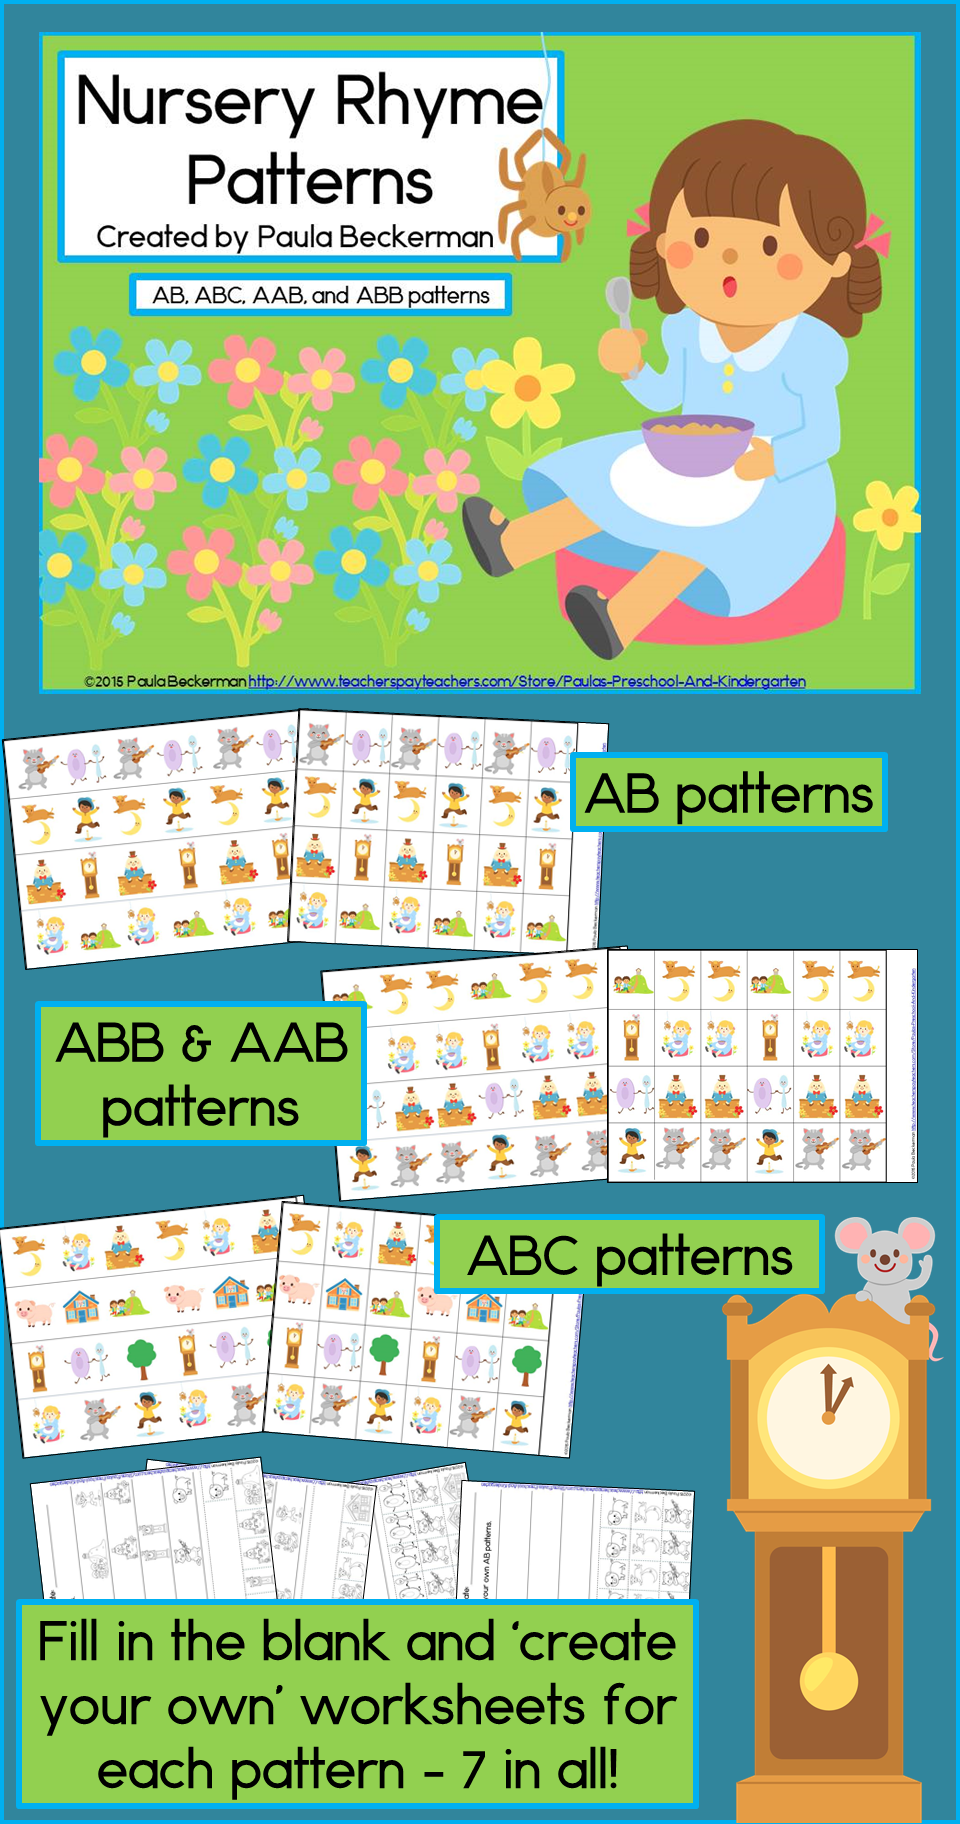 Nursery Rhyme Patterns Math Center with AB, ABC, AAB & ABB Patterns ...